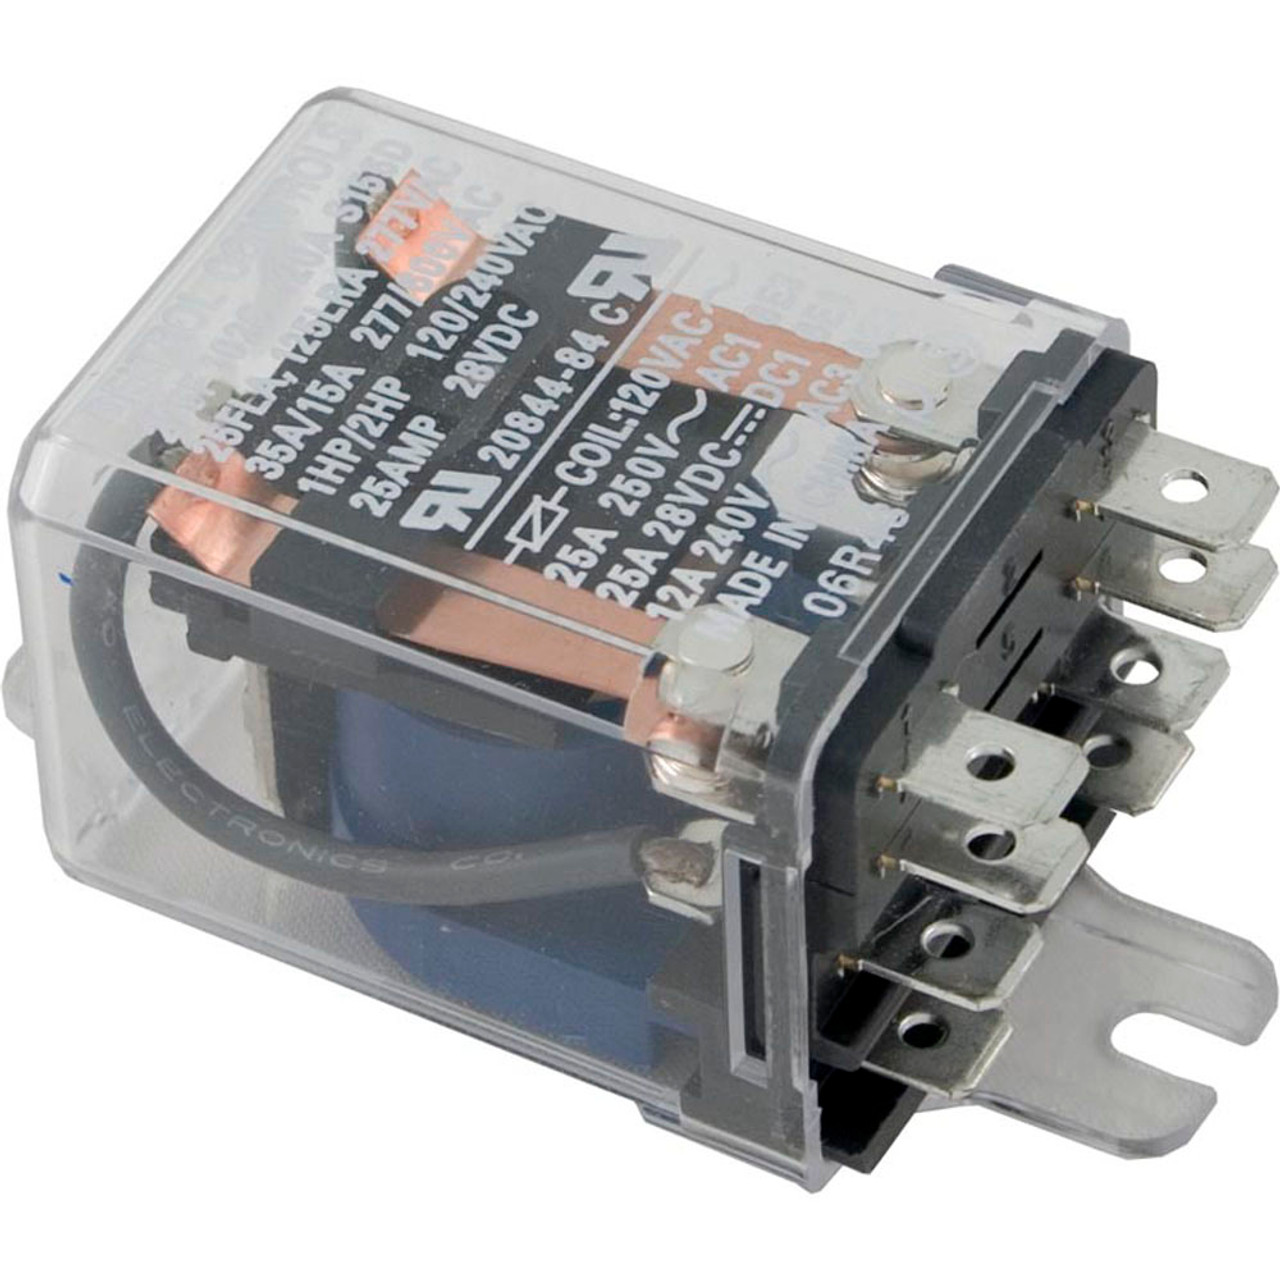 General Purpose Relays Ac POWER RELAY POTTER & BRUMFIELD DPST 25 A ...